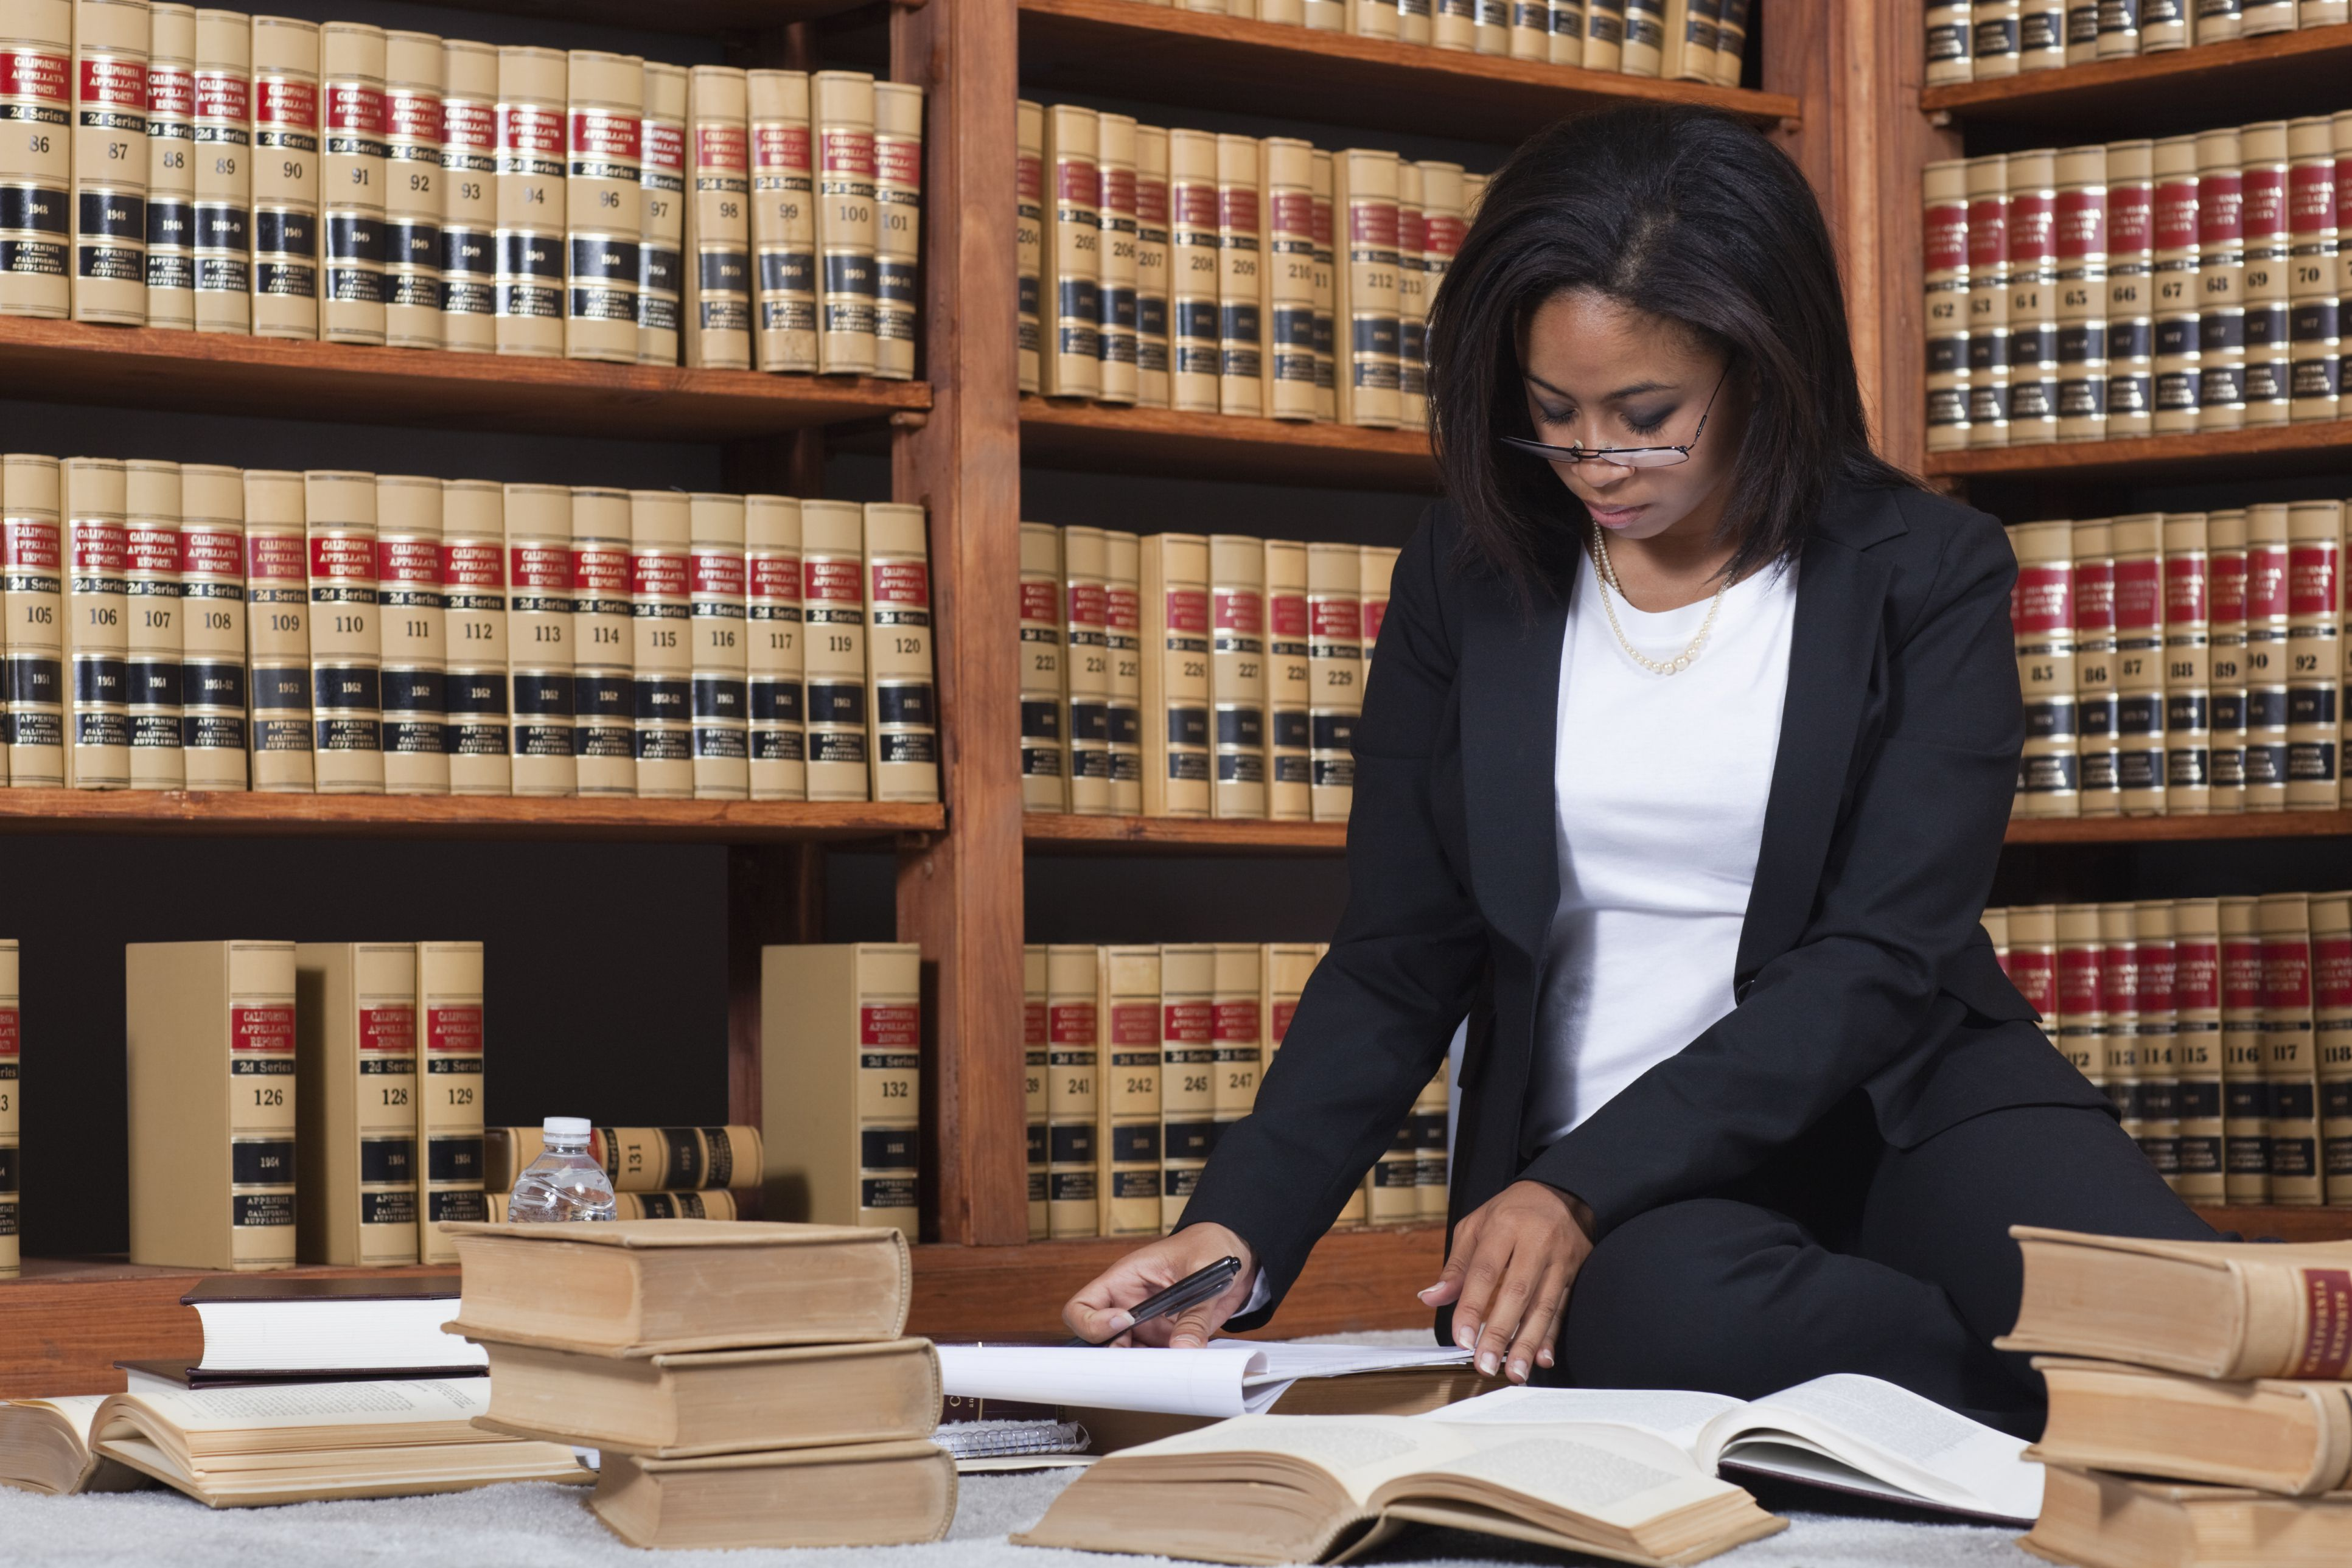 attorney career information - Attorney General Job Description